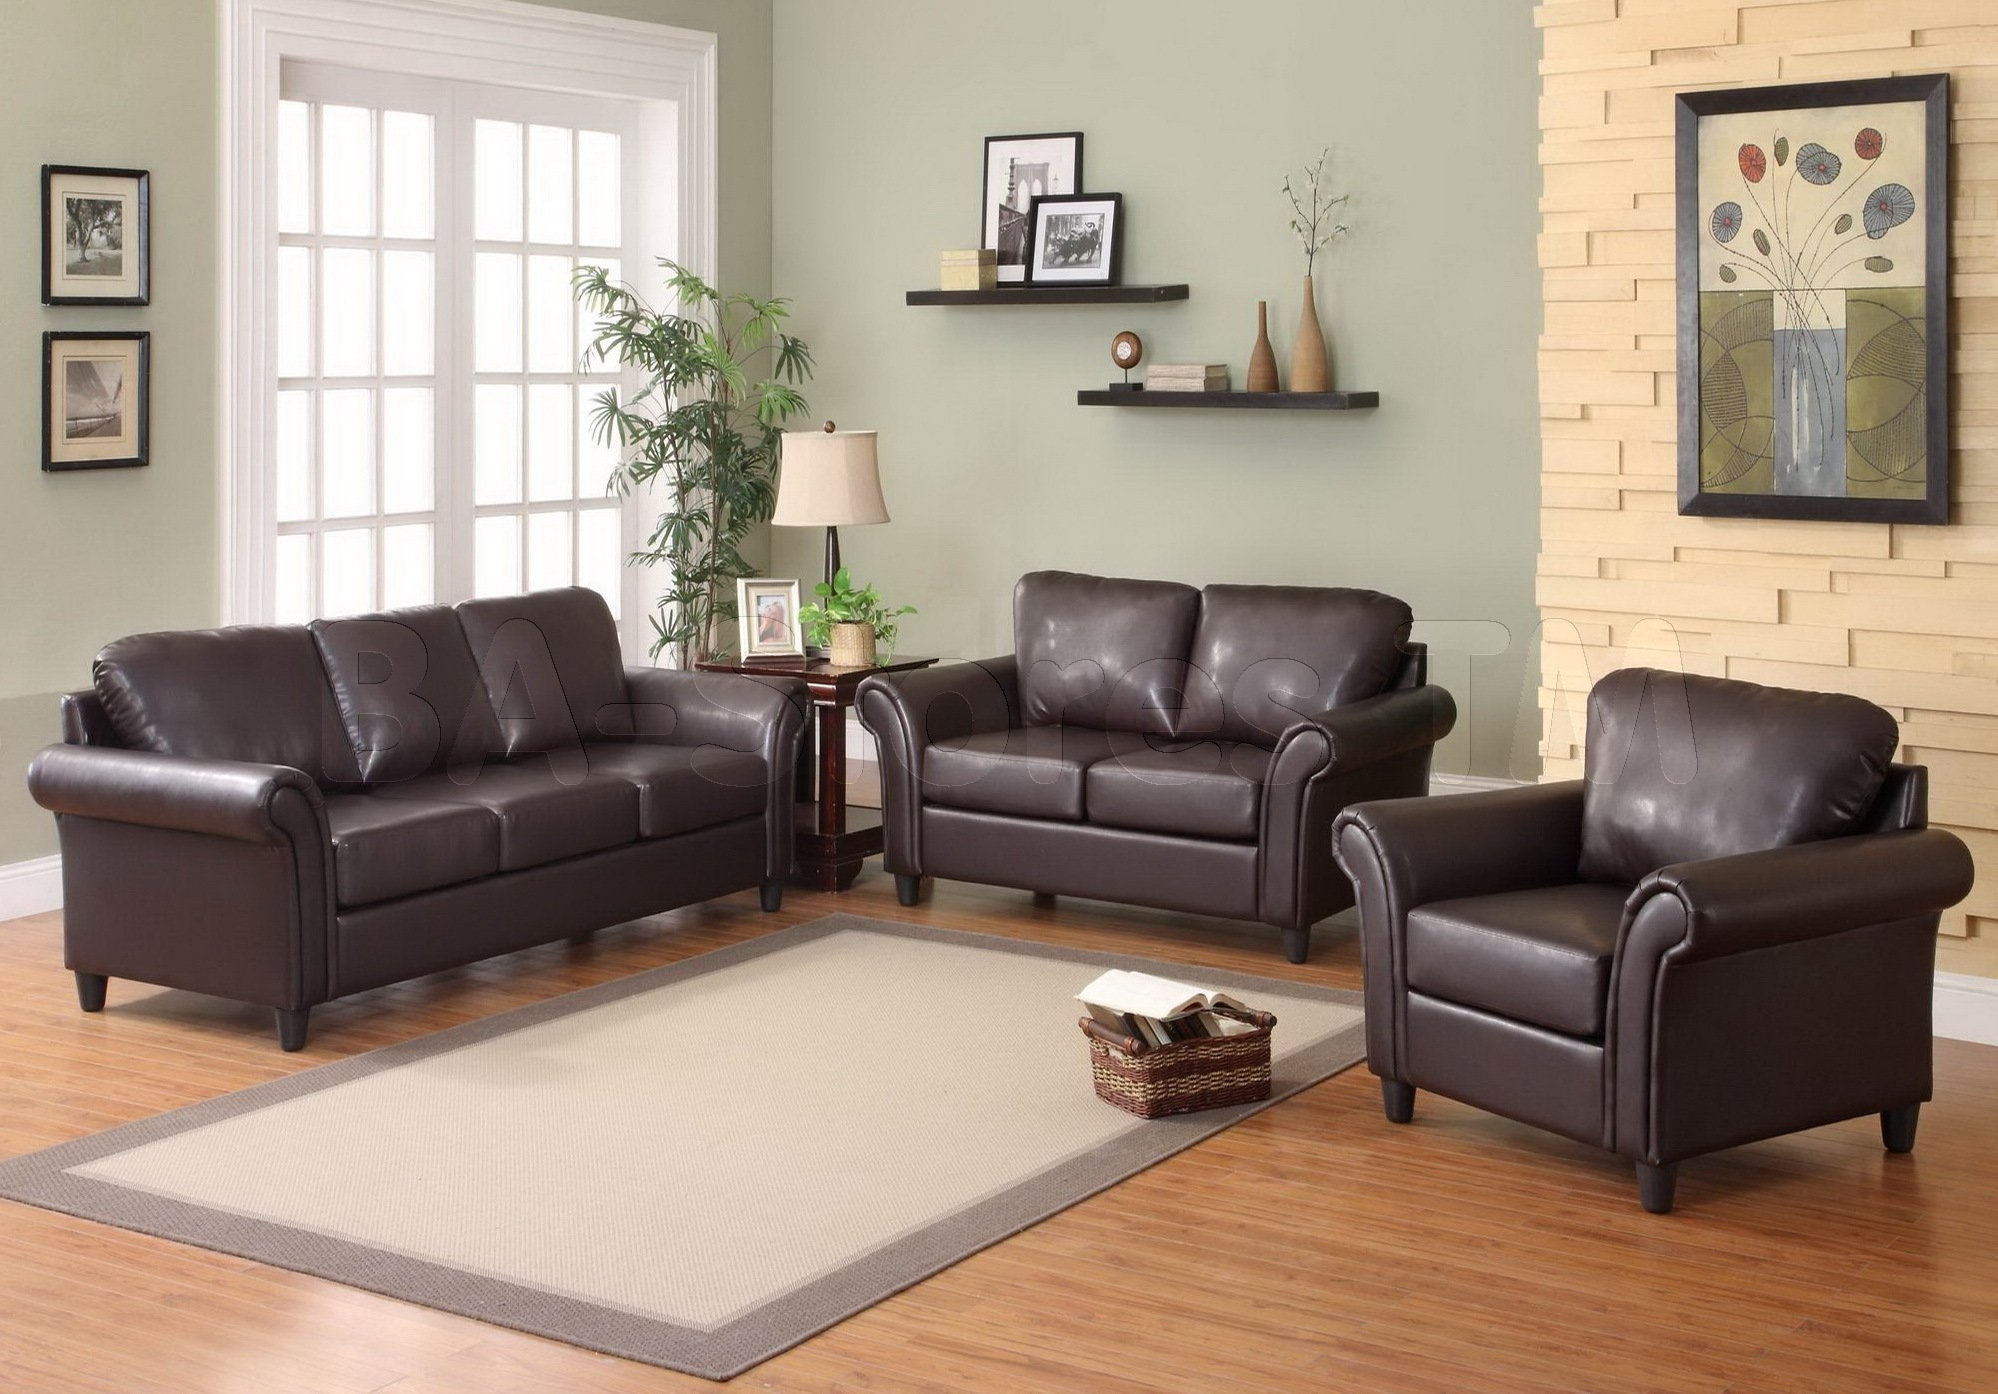 Accent Wall With Brown Furniture Presenting Black Leather Sofa And Intended For 2017 Brown Furniture Wall Accents (View 3 of 15)